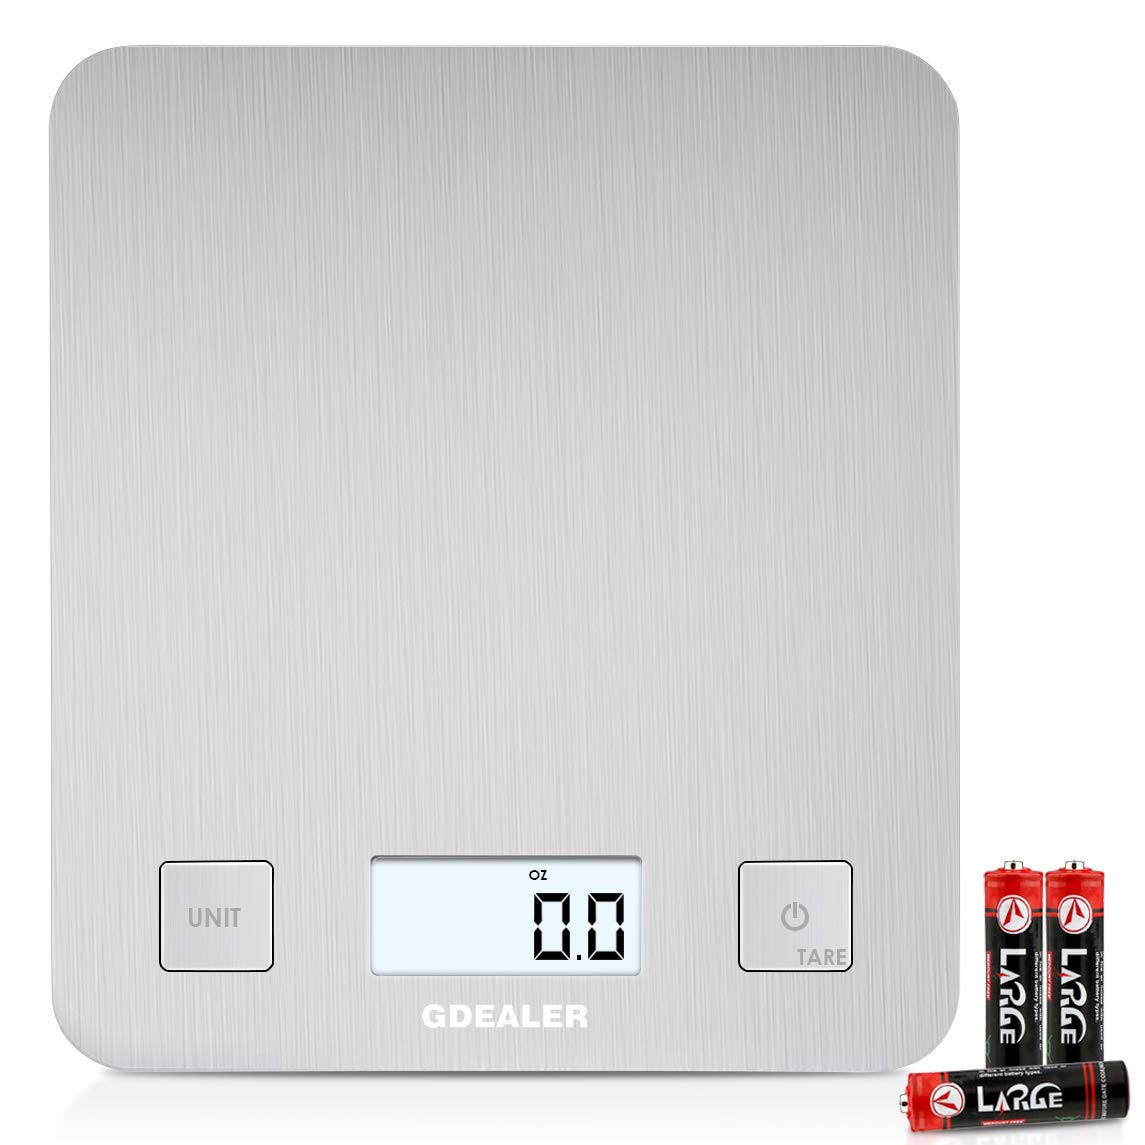 GDEALER Digital Food Scale,11lb/5kg Kitchen Scale with Large Stainless Steel Platform Back-lit LCD Display,Electronic Multifunctional Weight Scale for Dieting Cooking Baking,3 Batteries Included